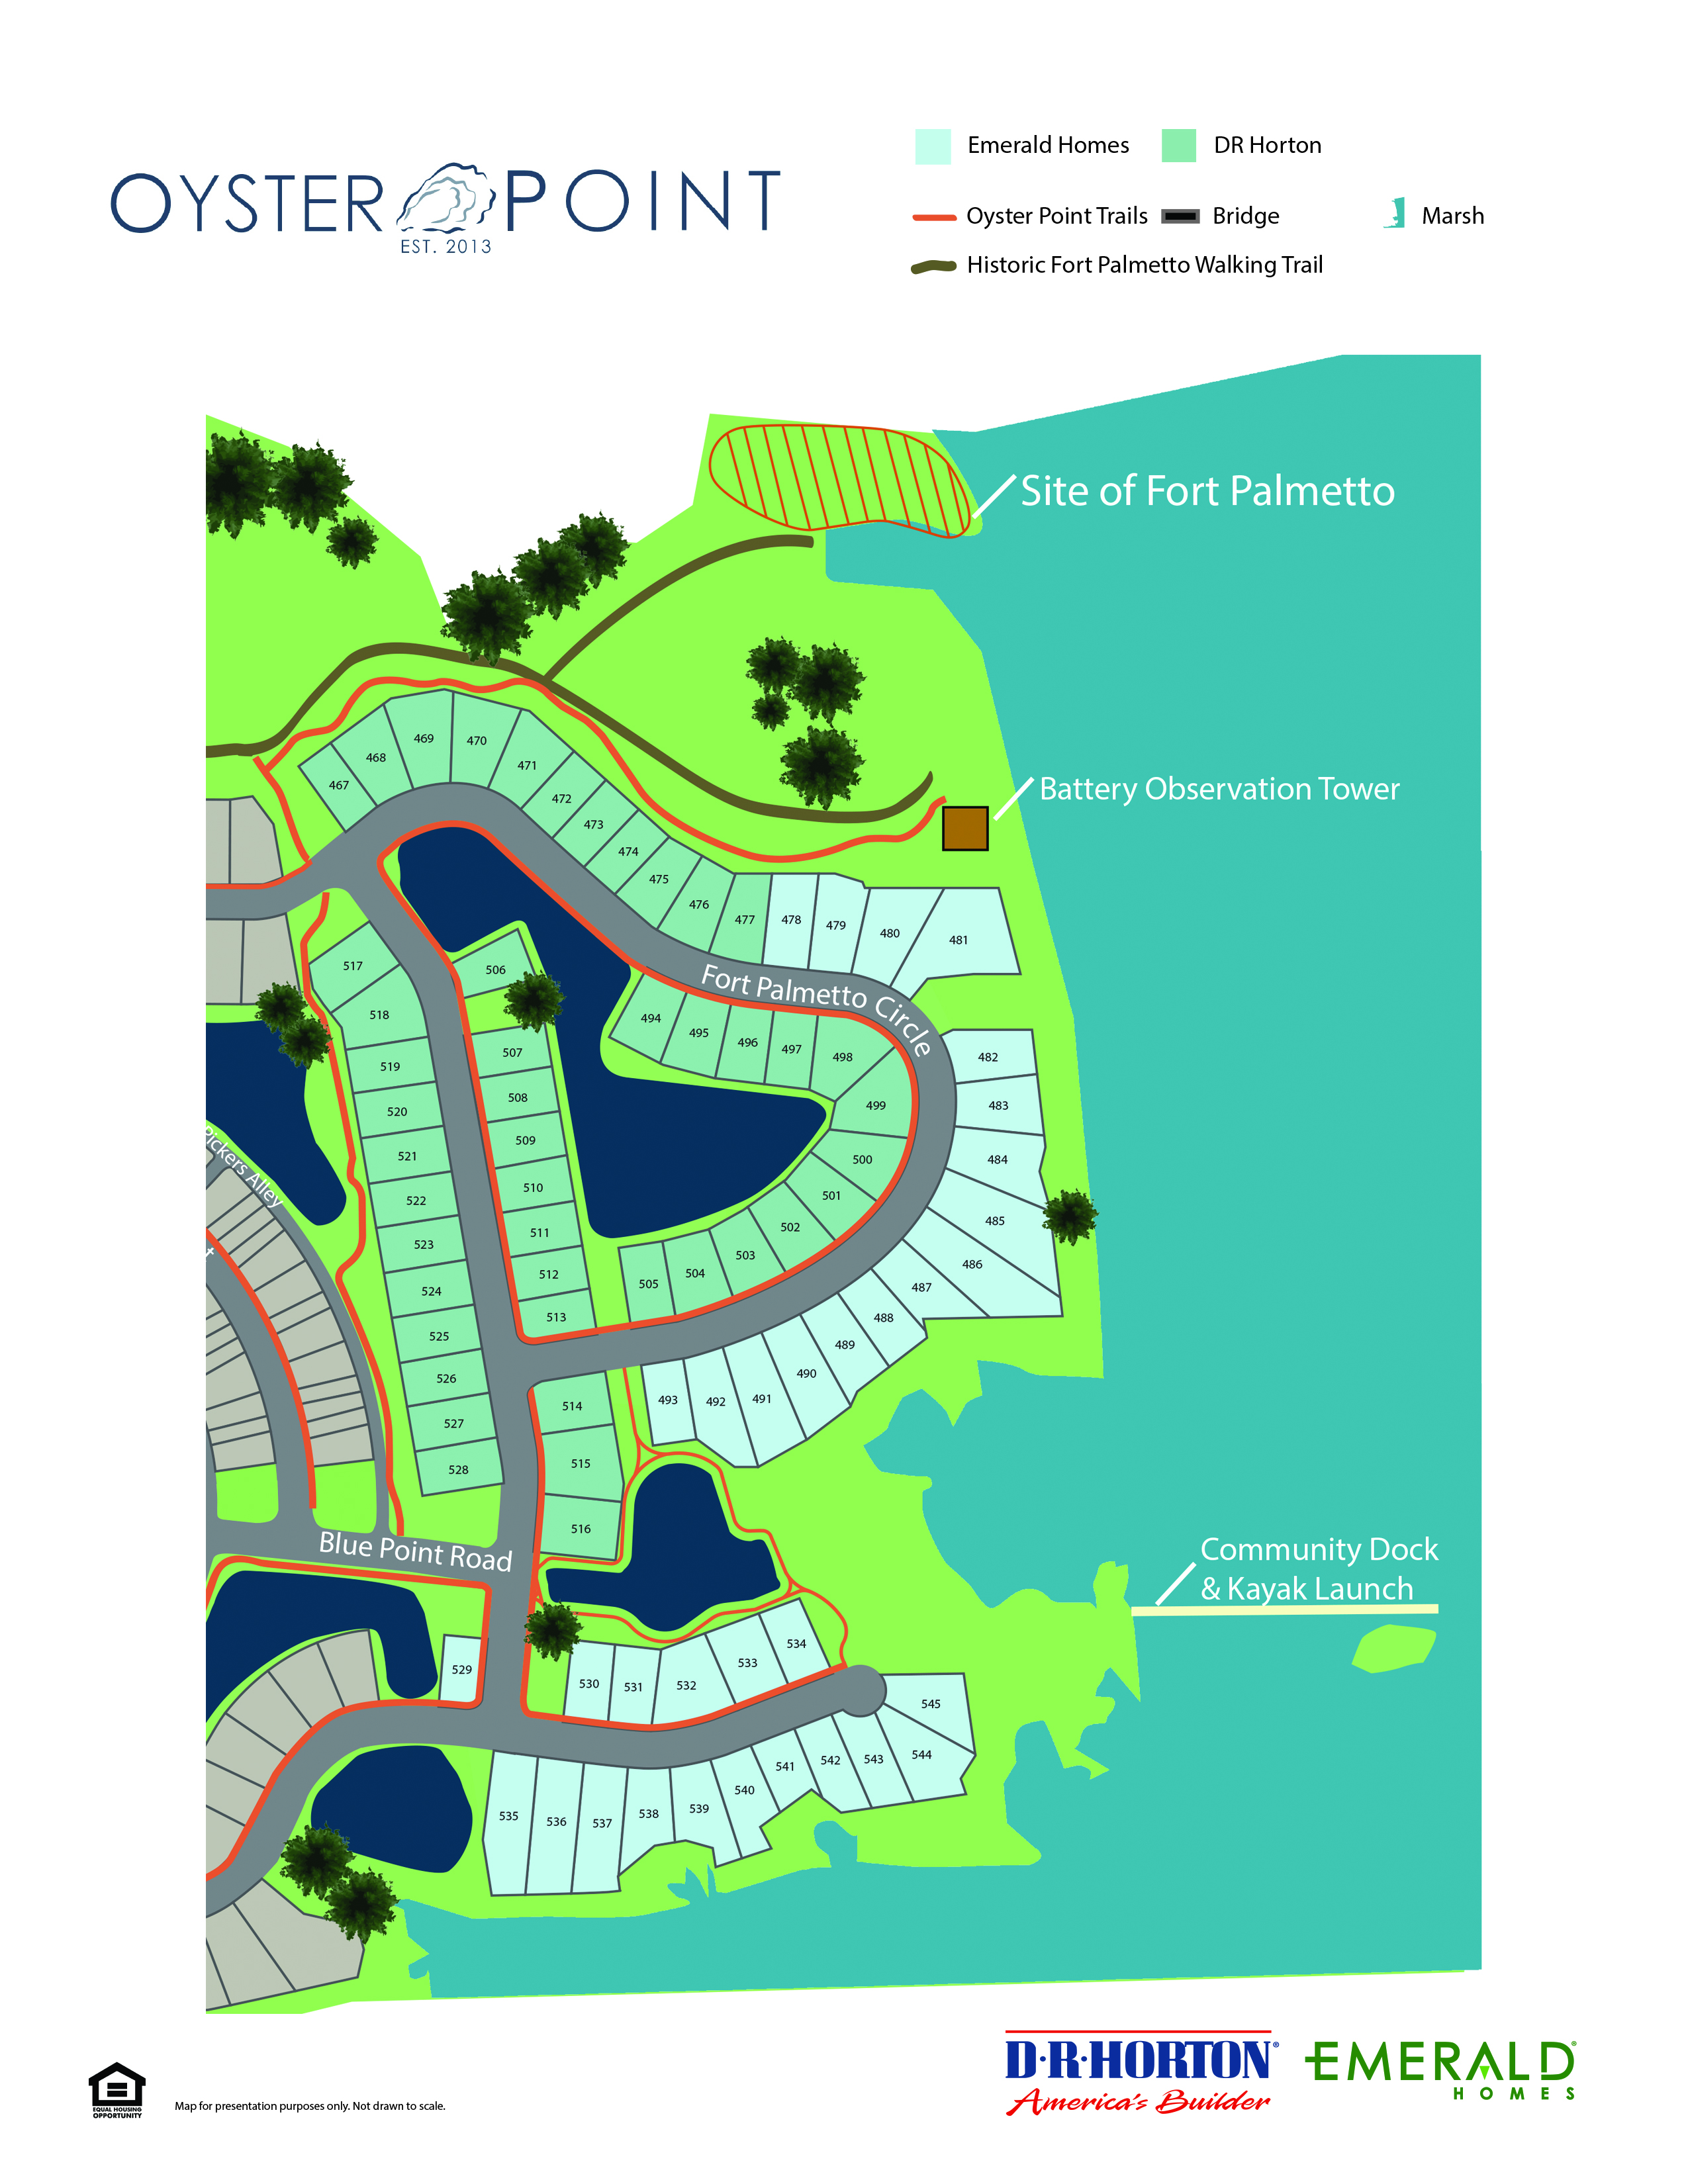 Mount Pleasant Sc Zip Code Map.New Homes In Oyster Point Mount Pleasant South Carolina D R Horton